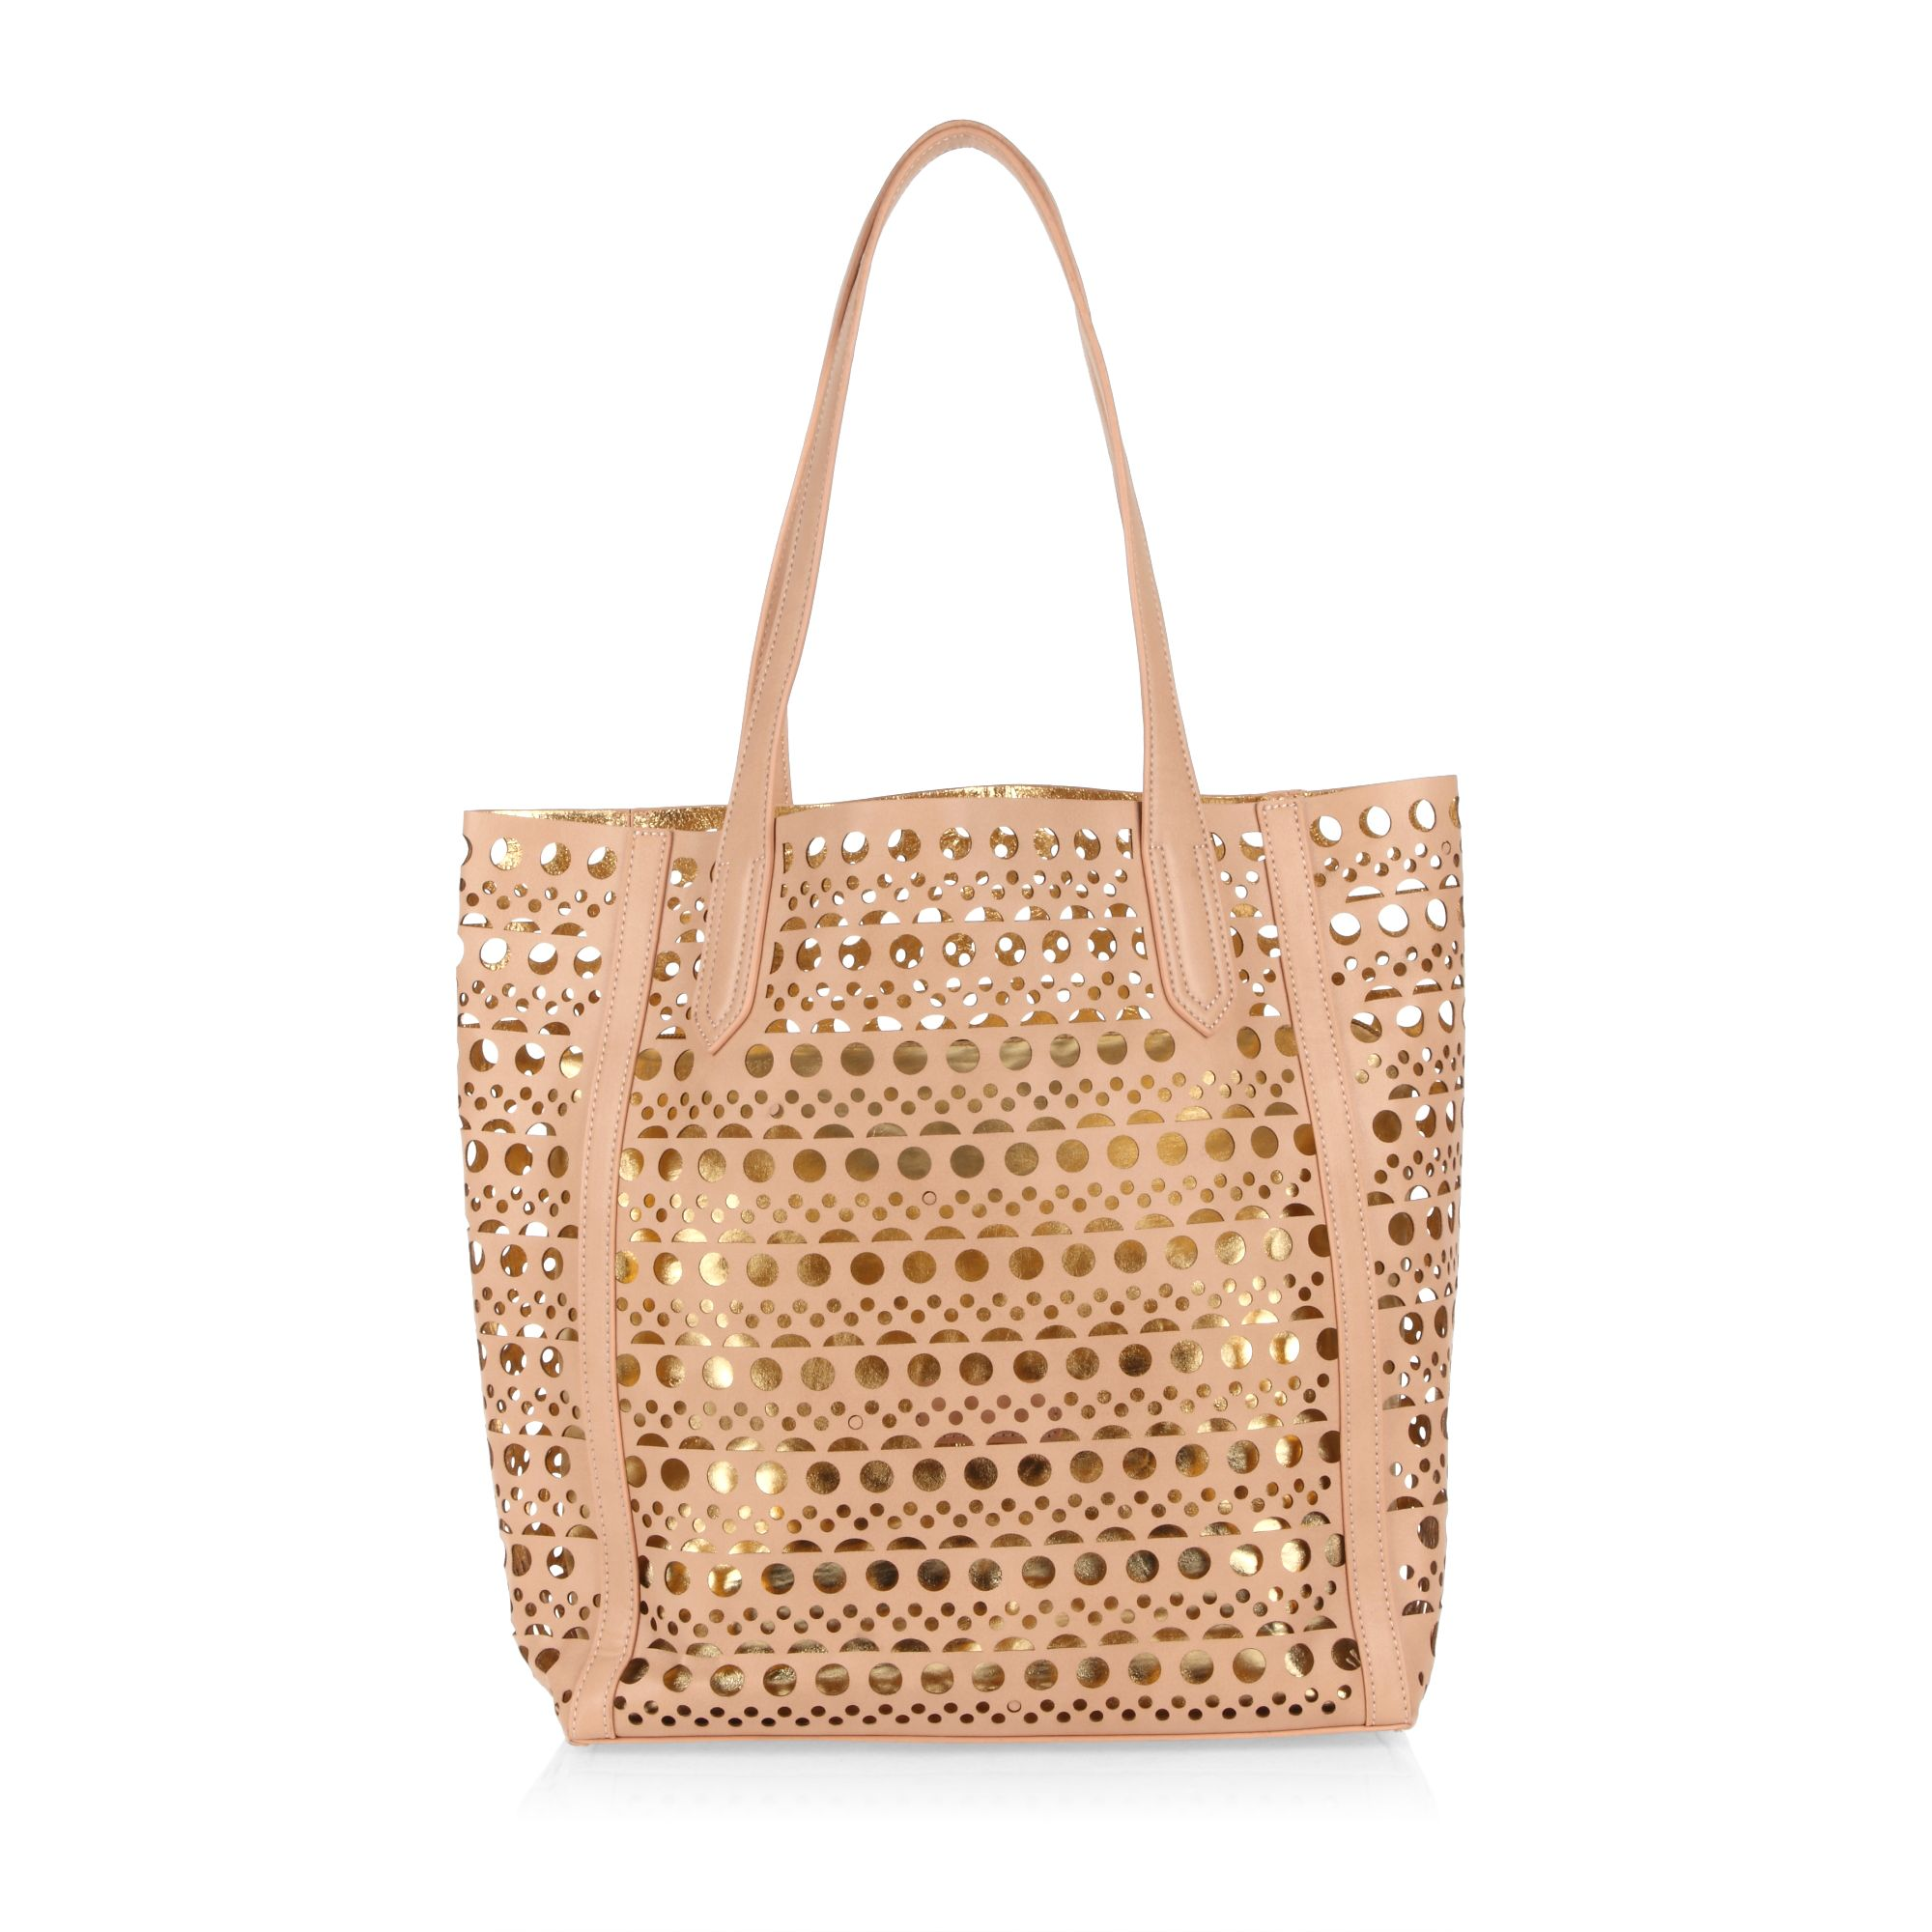 Beautiful metallic gold pouch tote bag